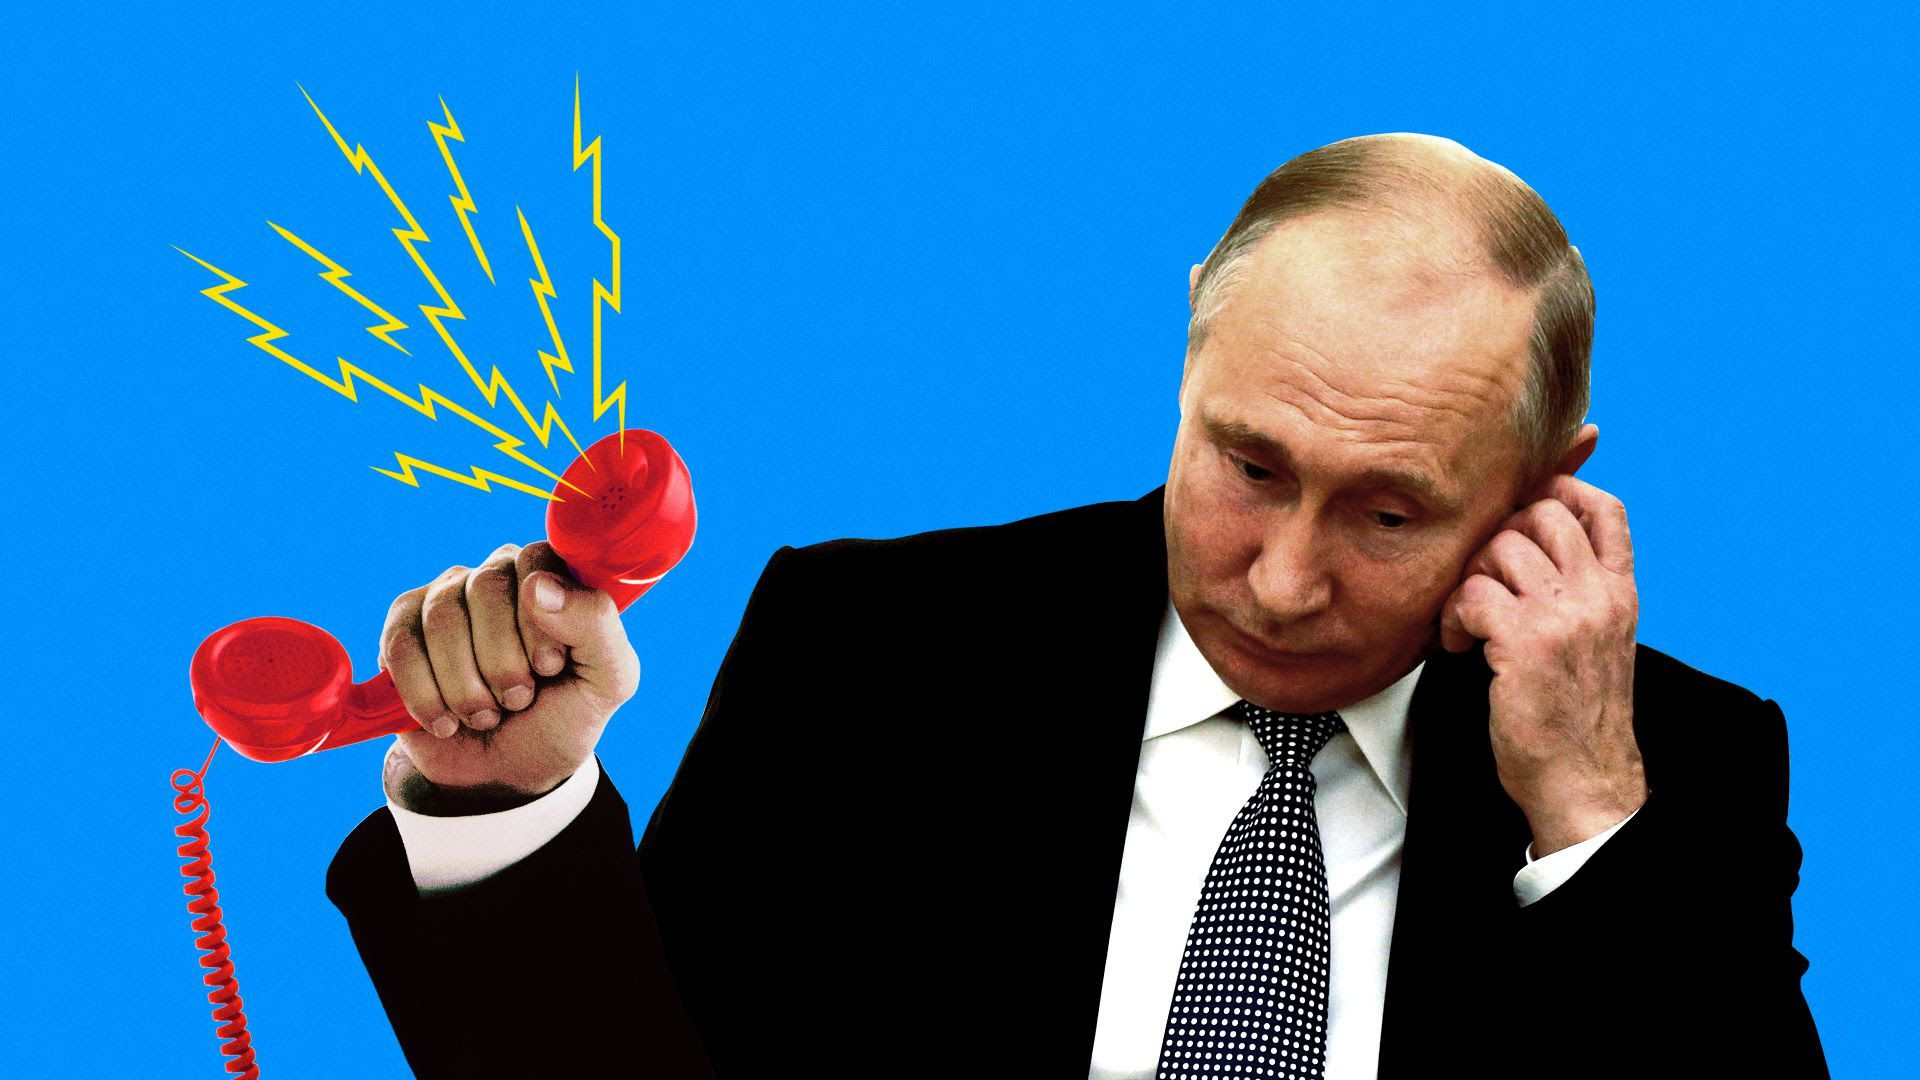 Scoop The Time Vladimir Putin Enraged Trump With A Campaign Video Axios